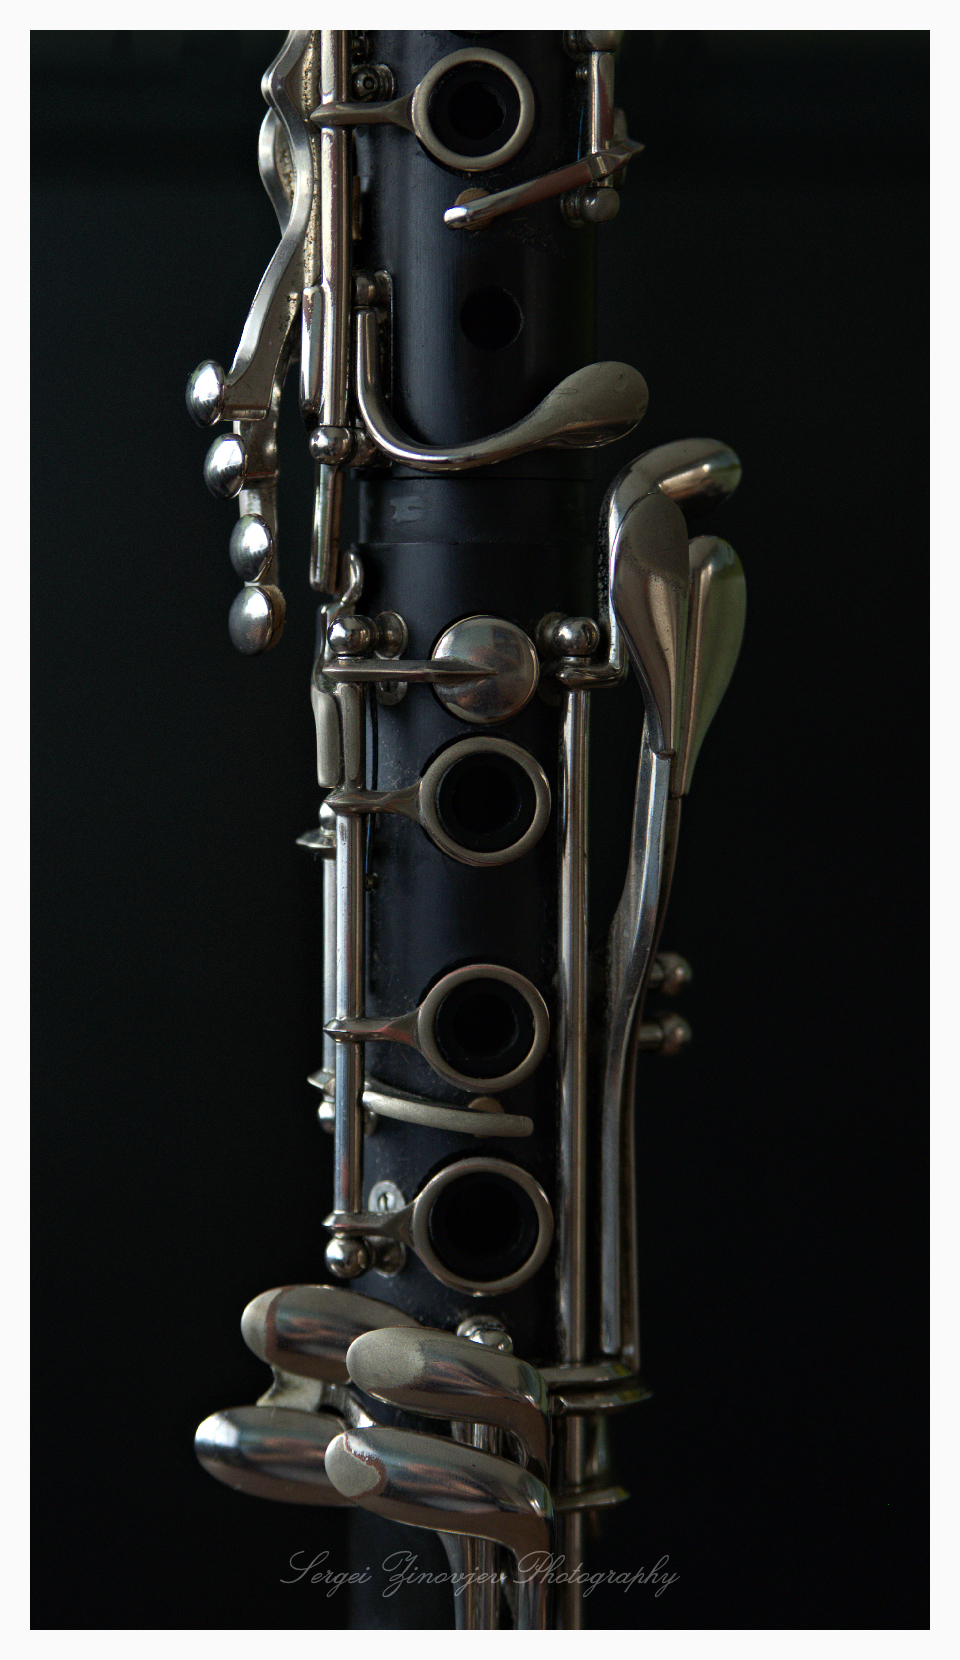 close-up of clarinet